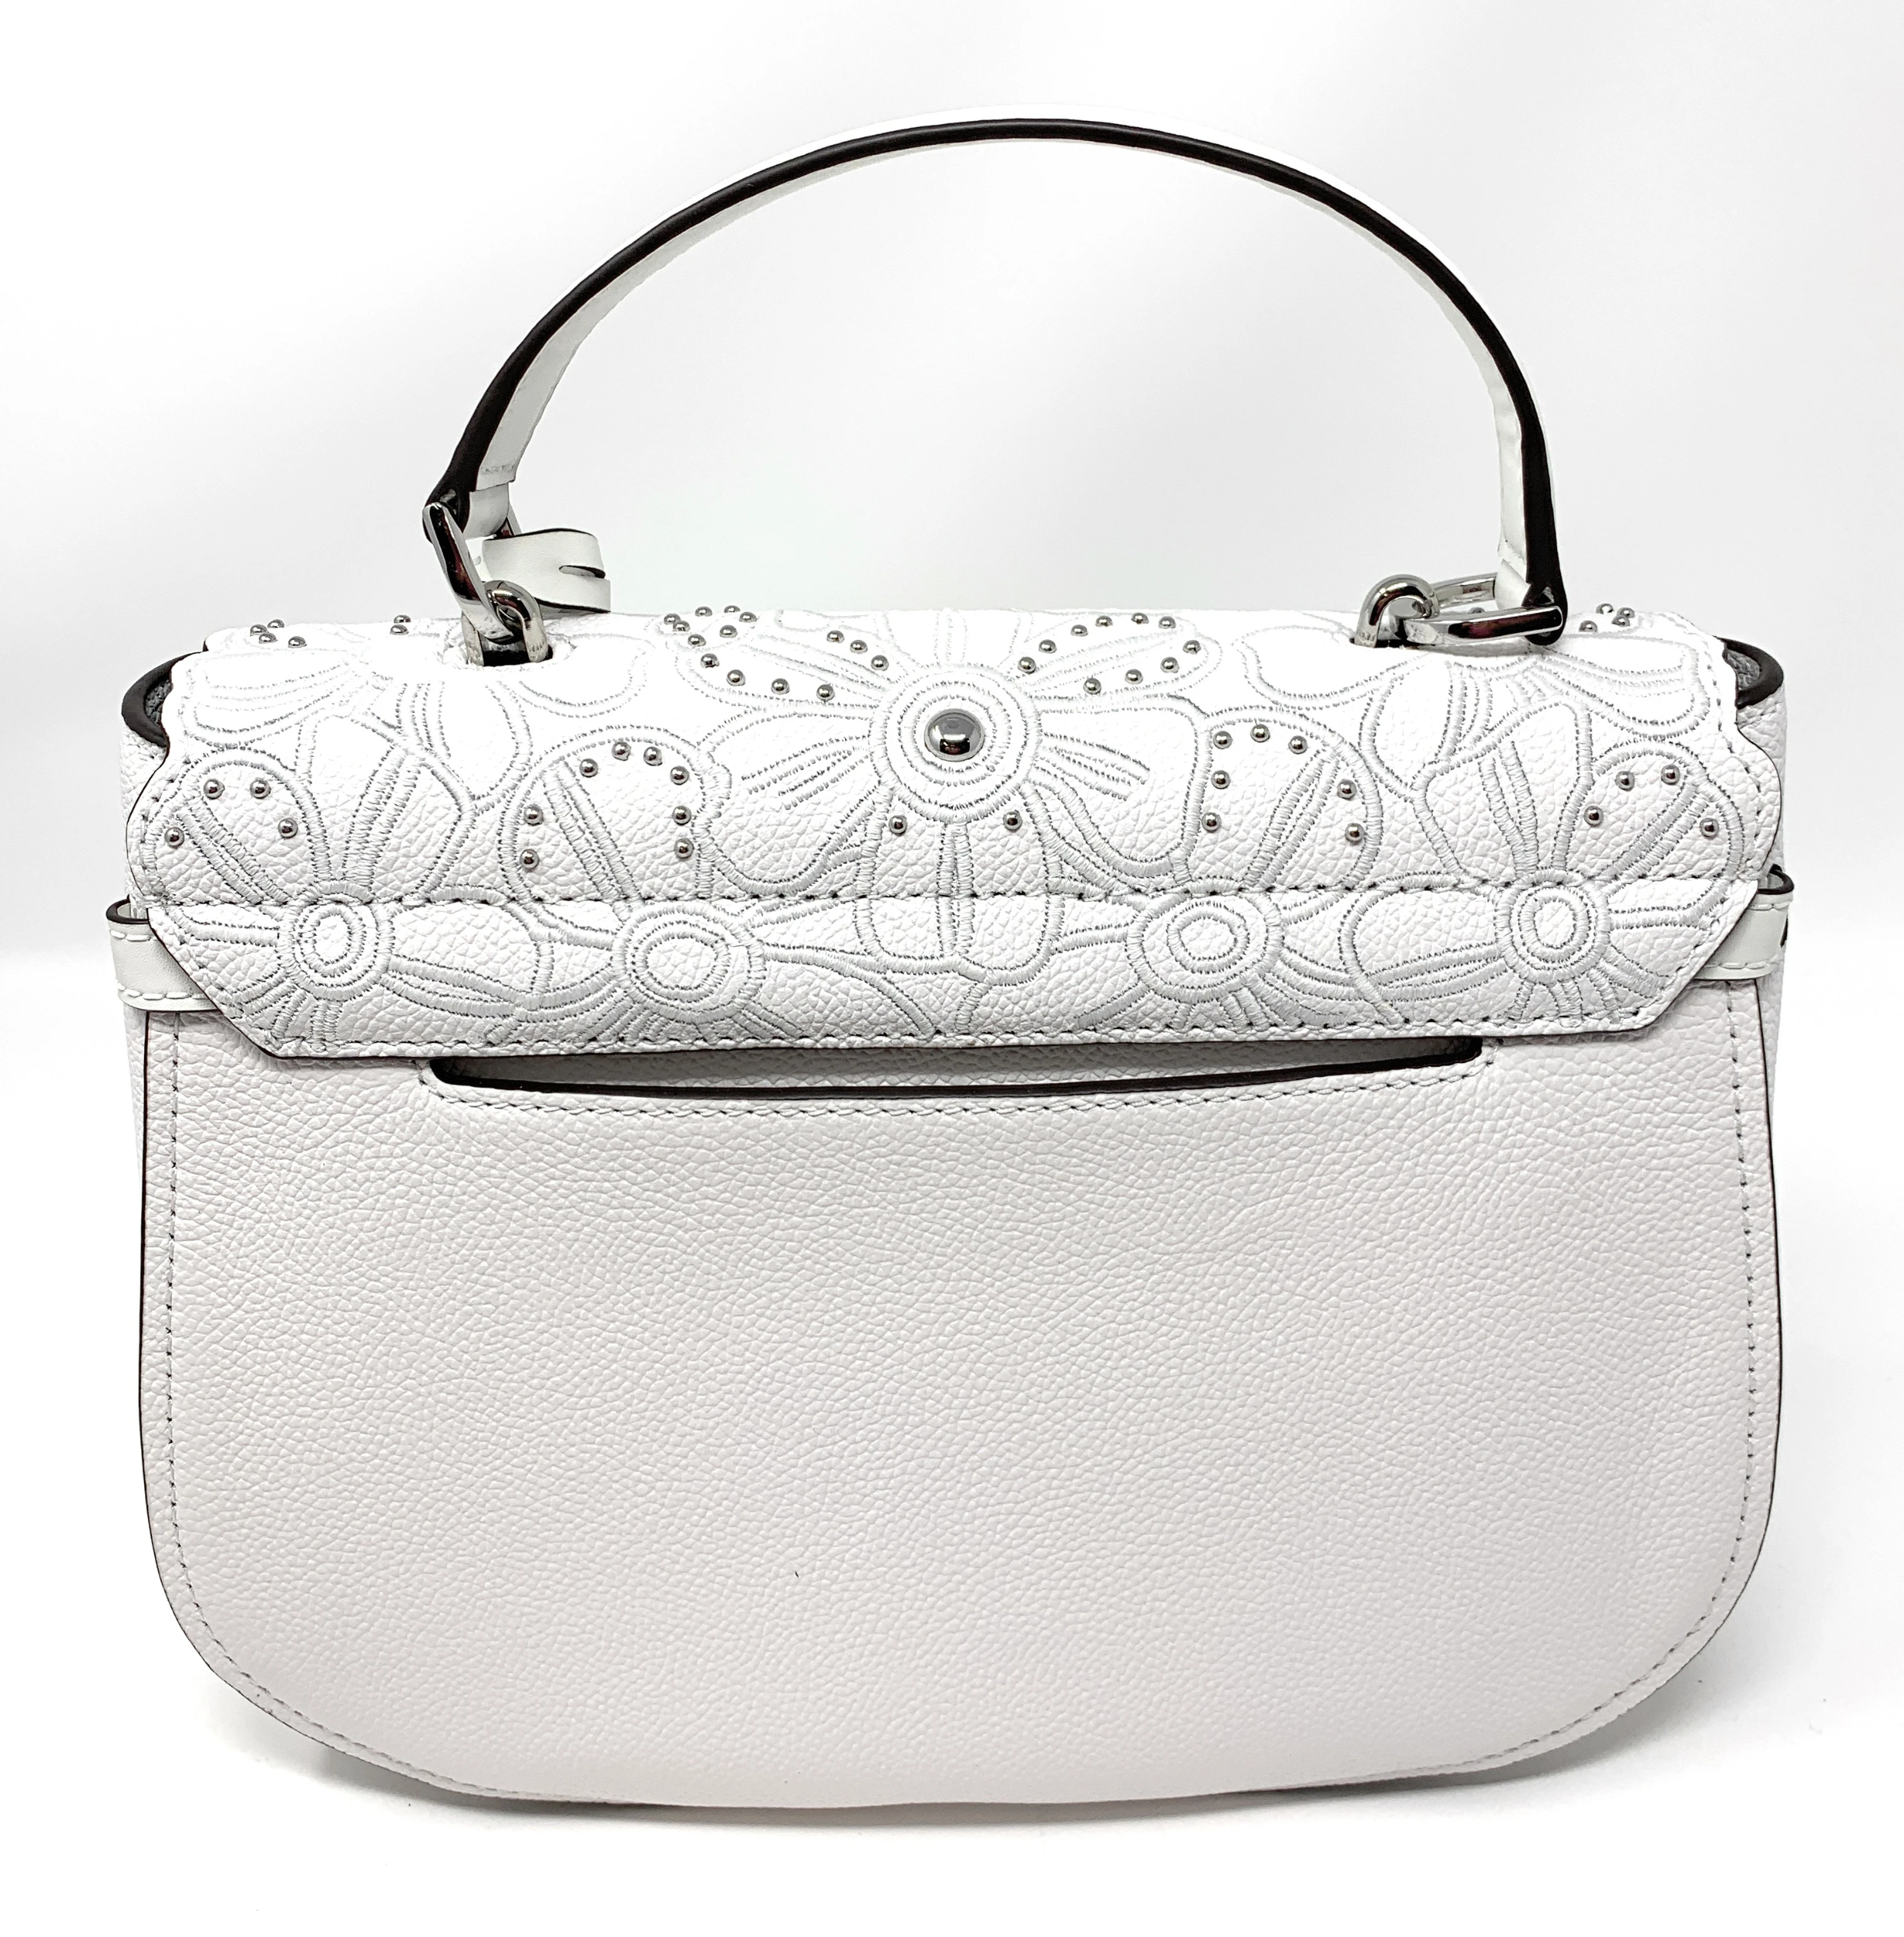 Details about Michael Kors Cassie Large Top Handle Leather Studded Satchel Bag Optic White